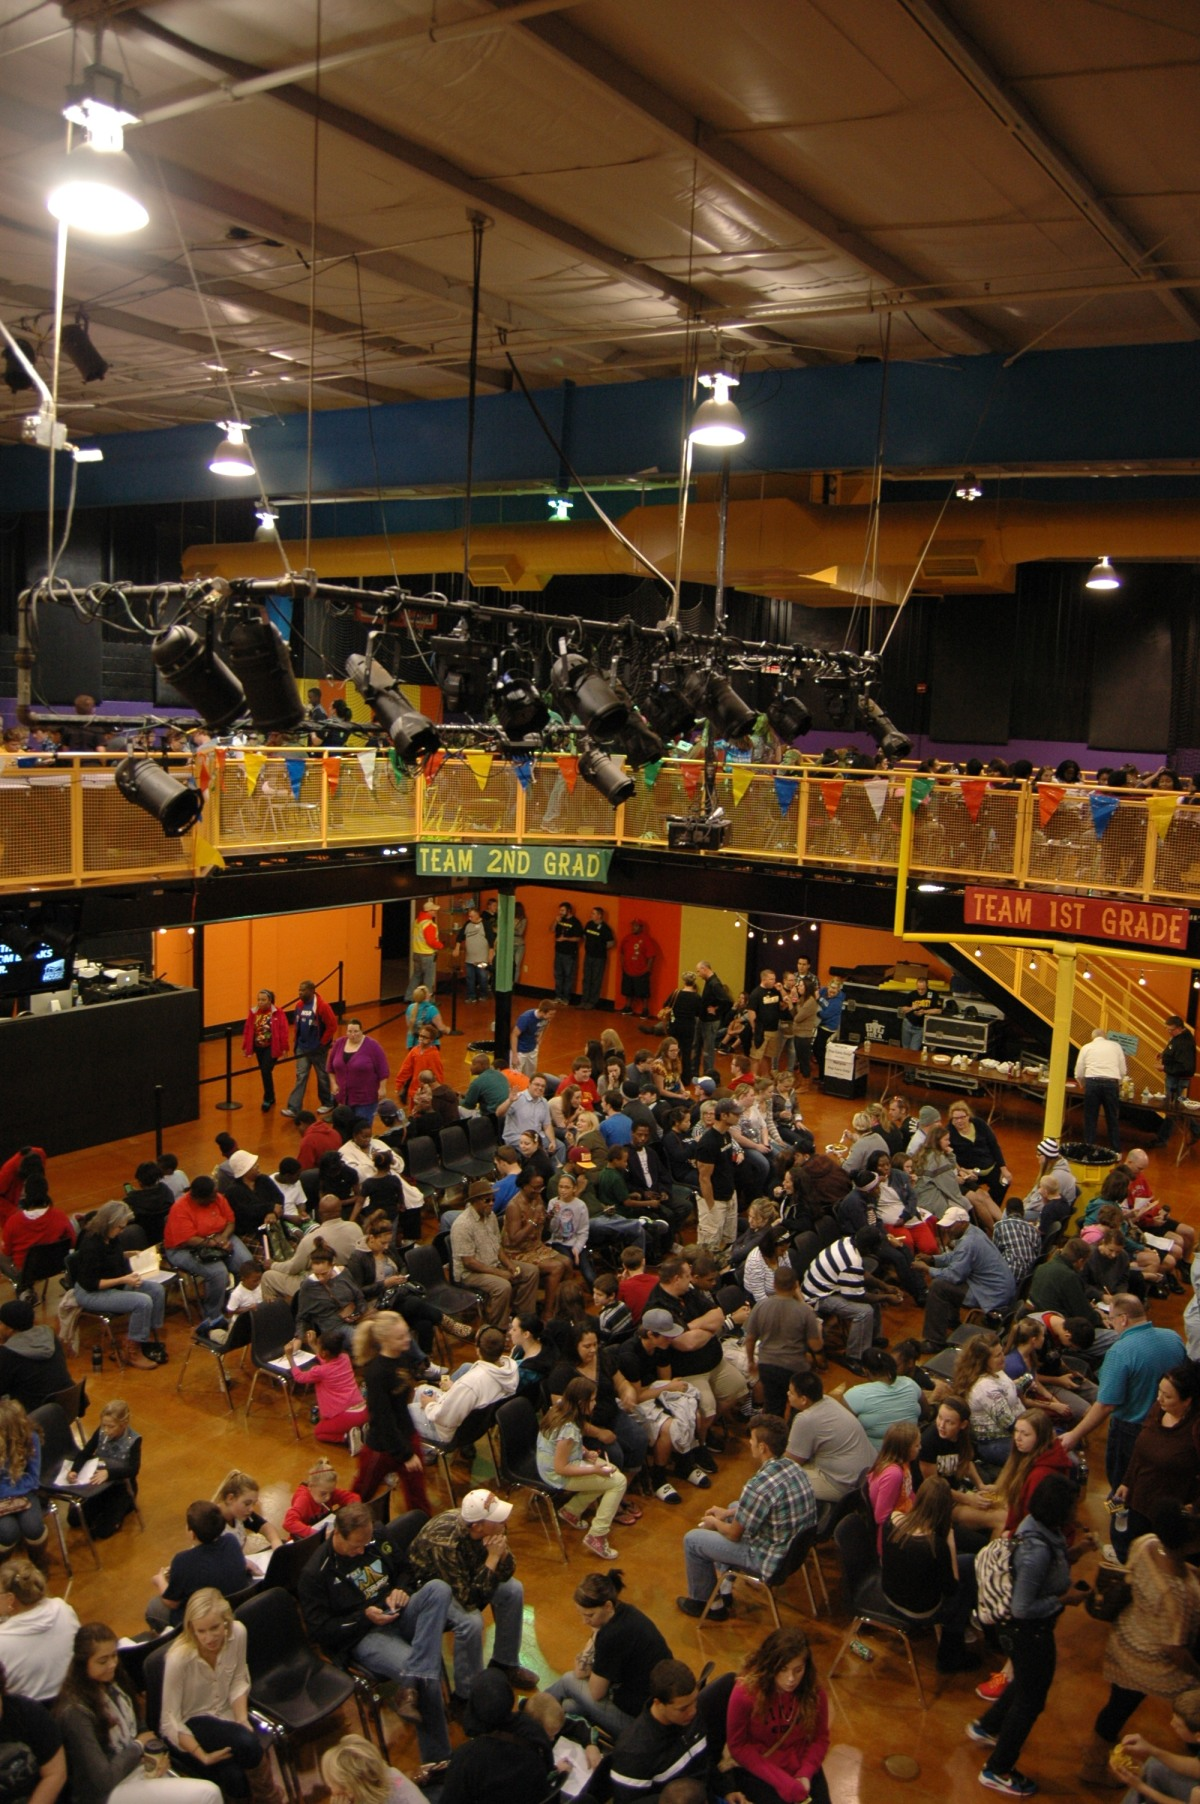 The gym at NewSpring Church during Judgement House 2013, Wichita, KS